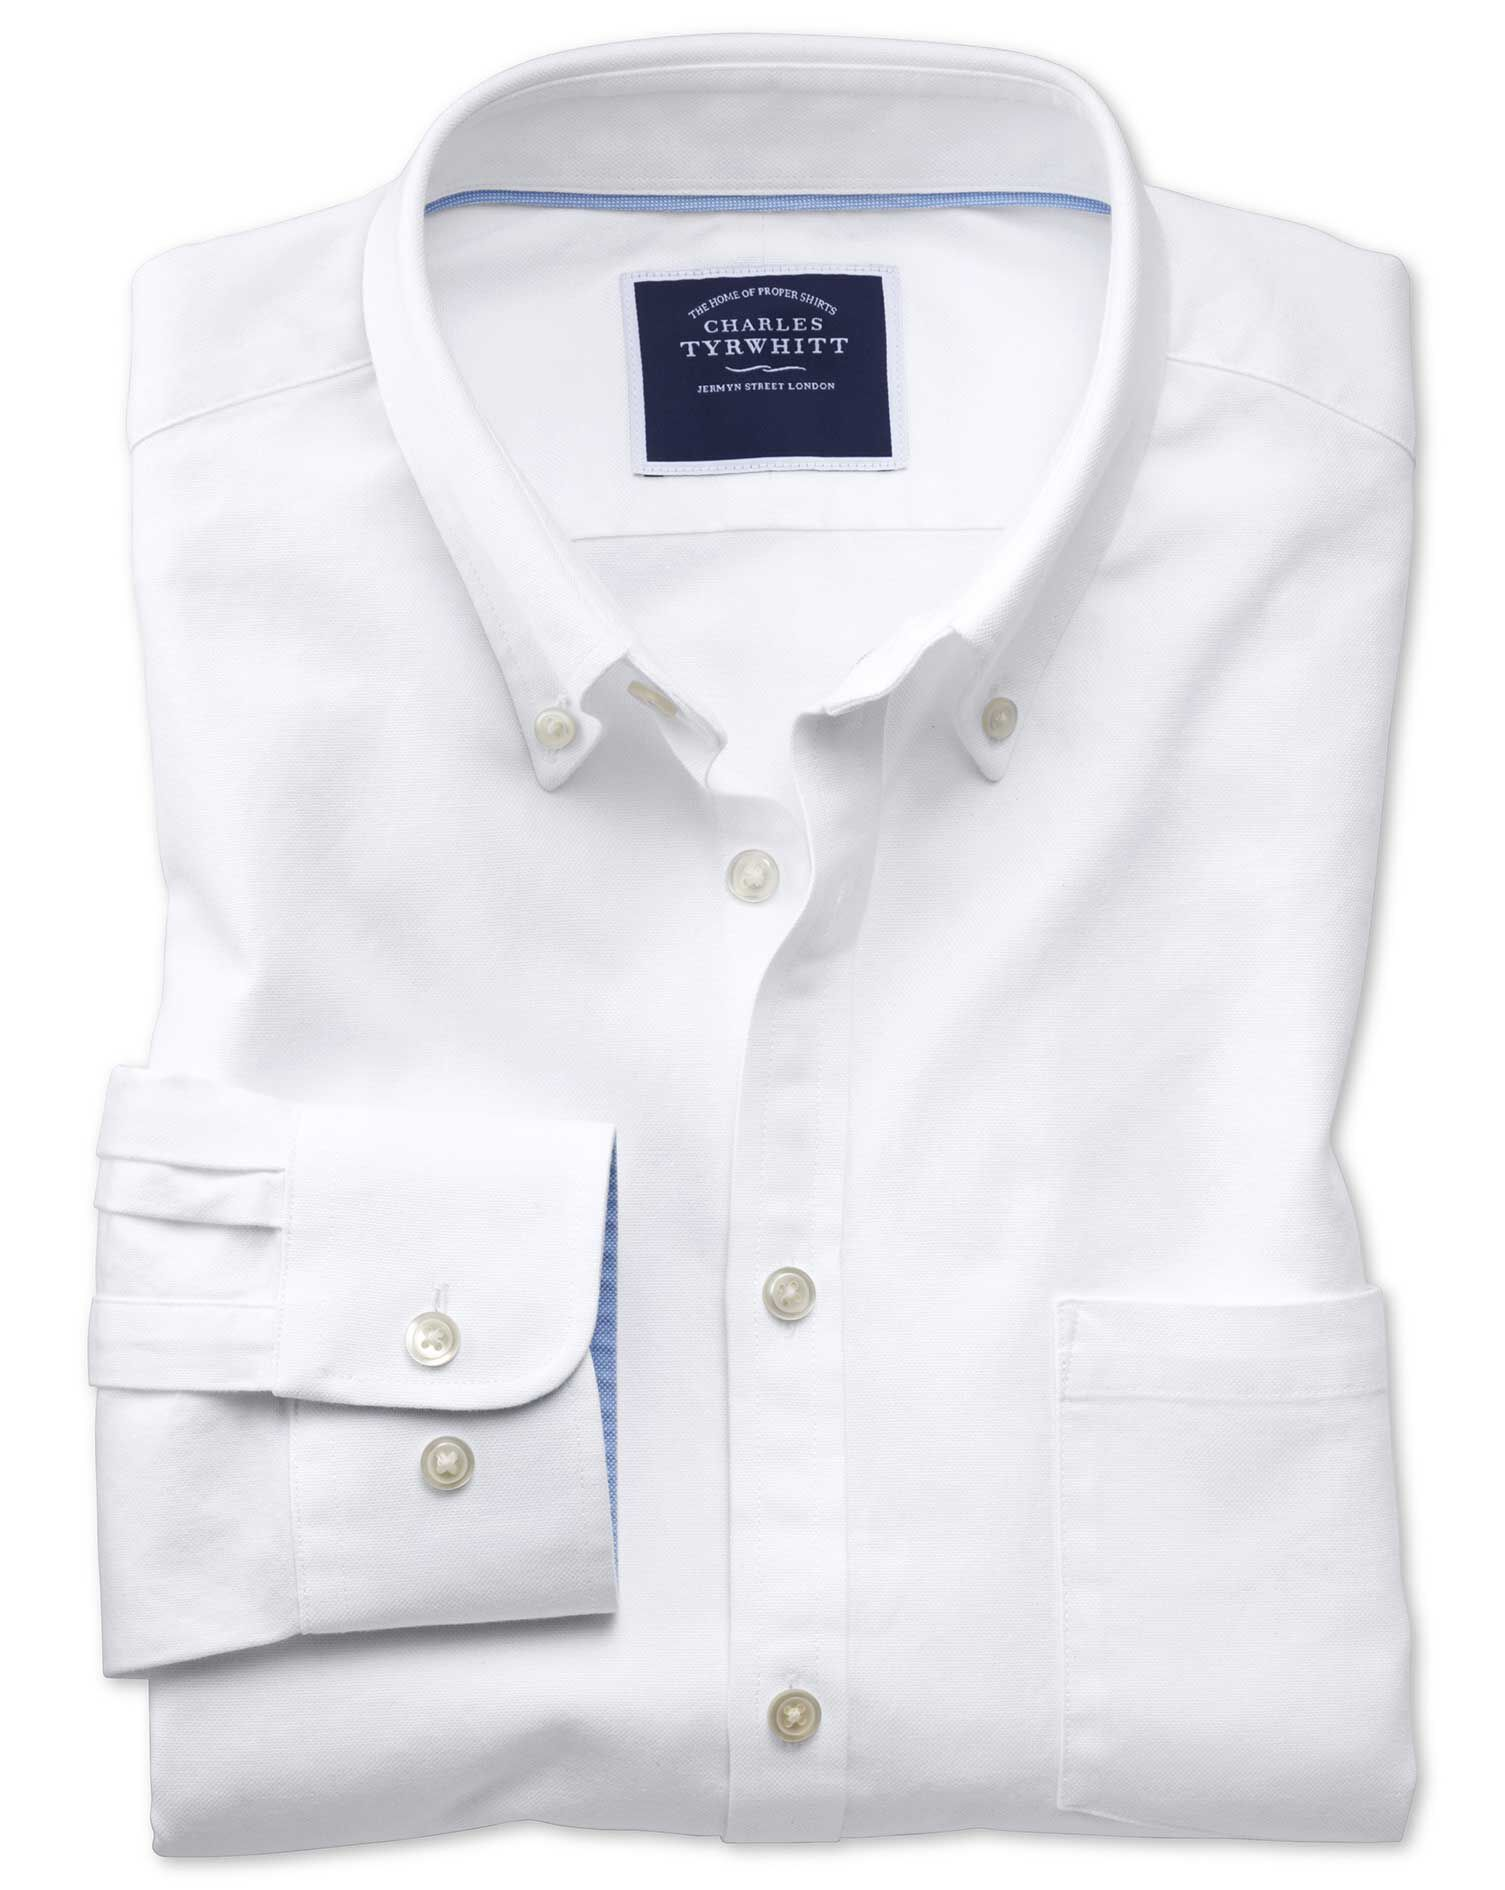 Slim Fit Button-Down Washed Oxford Plain White Cotton Shirt Single Cuff Size XXL by Charles Tyrwhitt